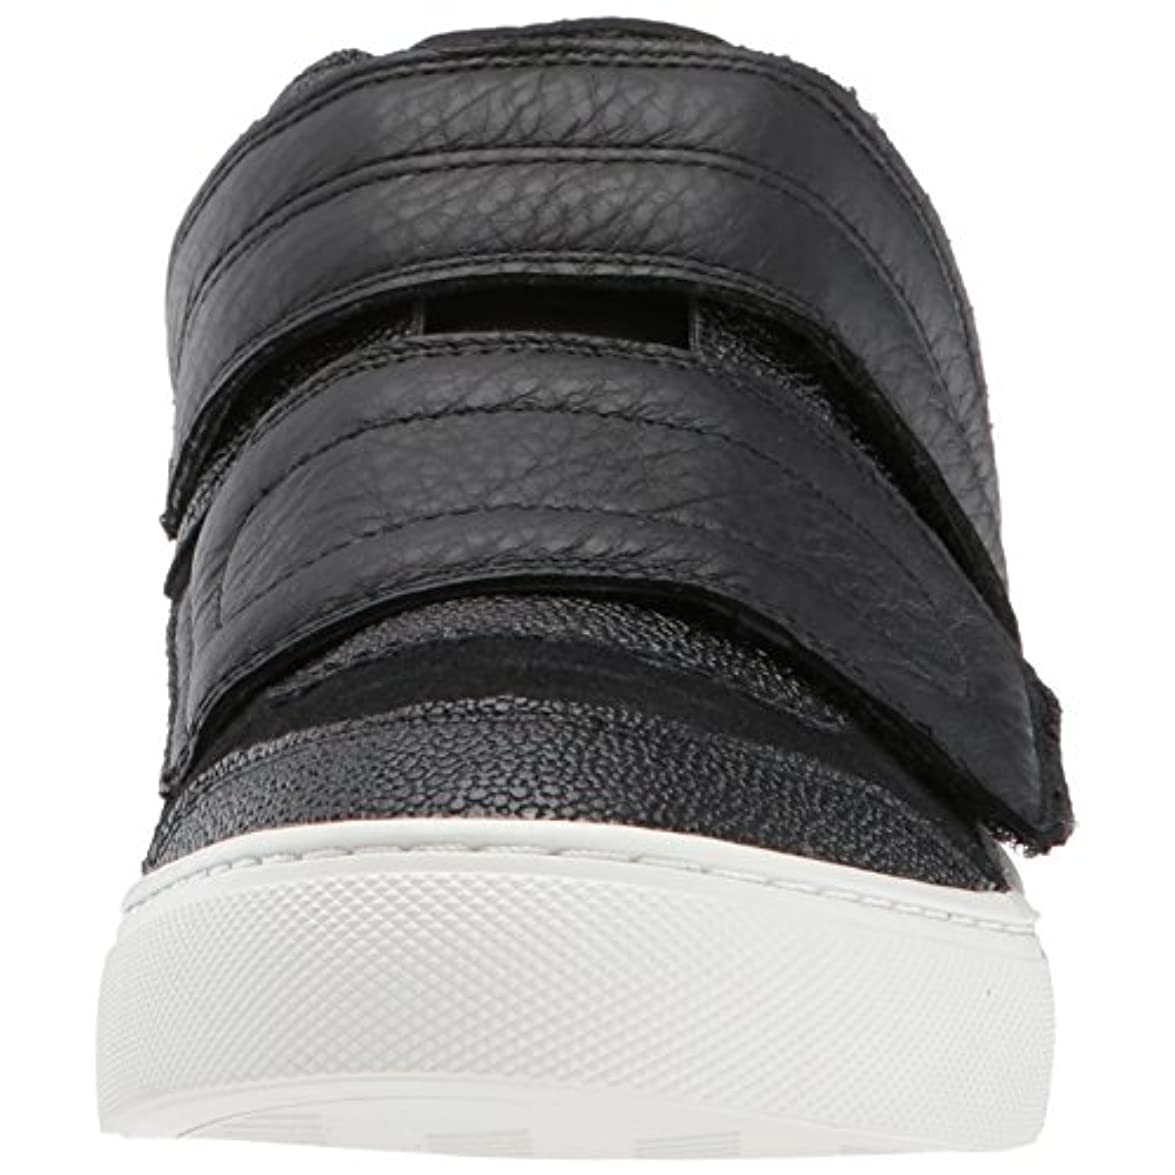 Skechers Side Street - Smooth Over Nero Pelle